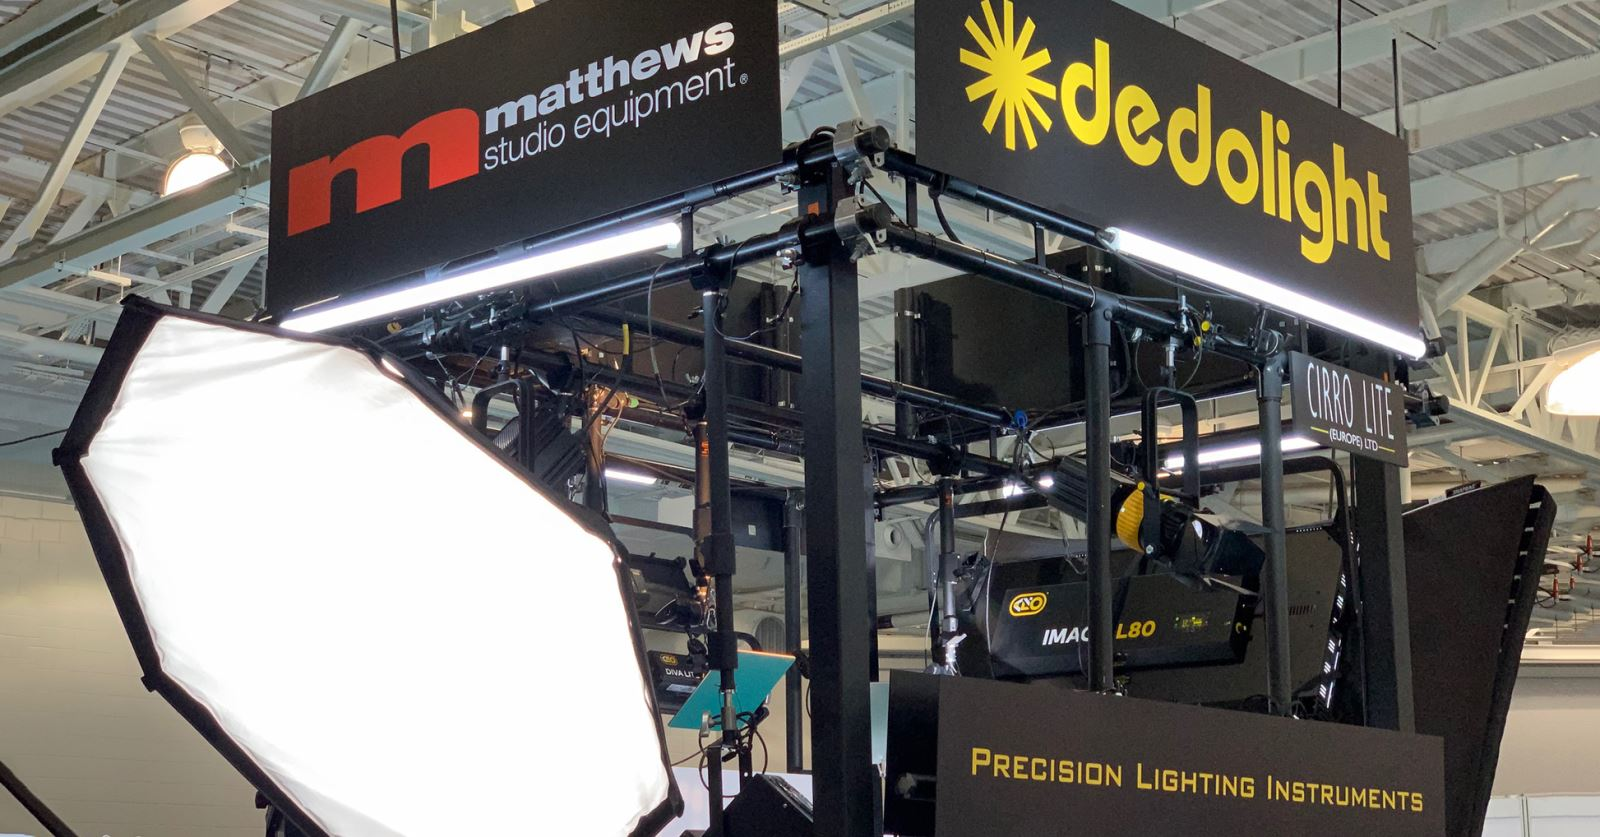 Two new GTC sponsors in one! Both Matthews Studio Equipment and Dedolight have just joined at GTC sponsor companies